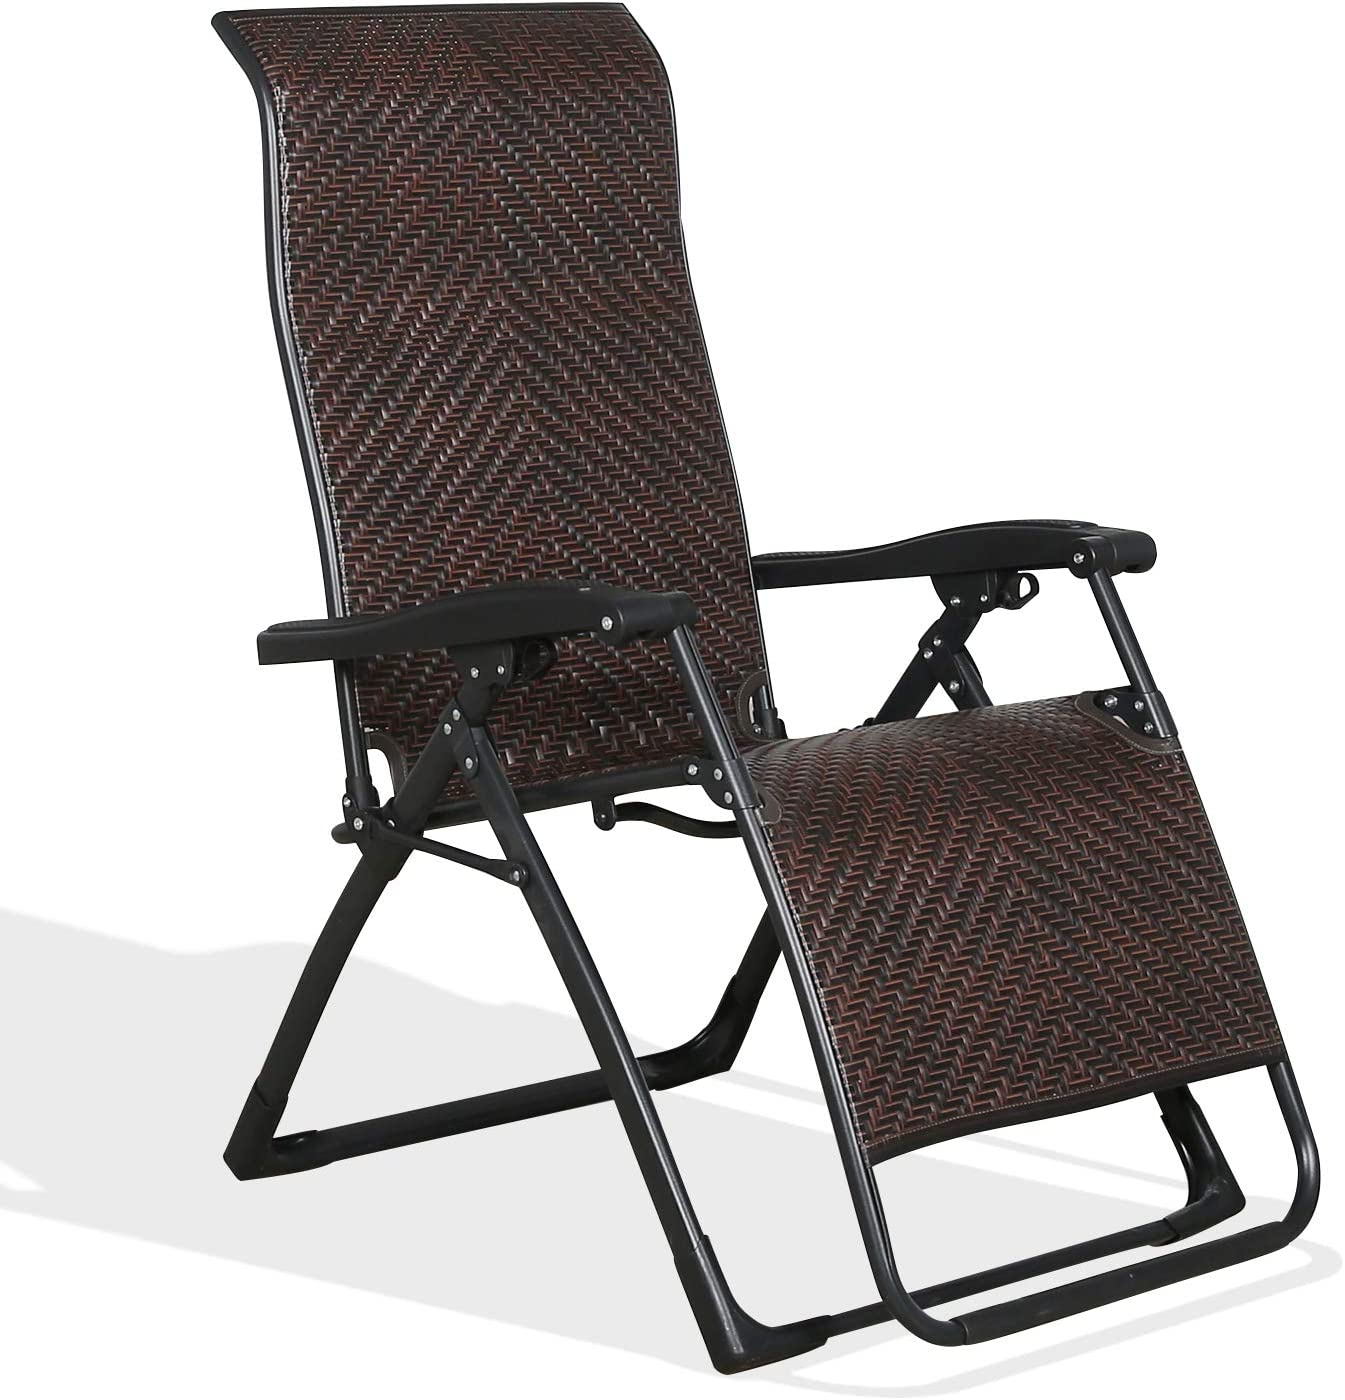 Homall Wicker Zero Gravity Chair Patio Folding Recliner Adjustable Portable Rattan Lounge Outdoor Chair for Lawn Poolside Yard Camping and Fishing